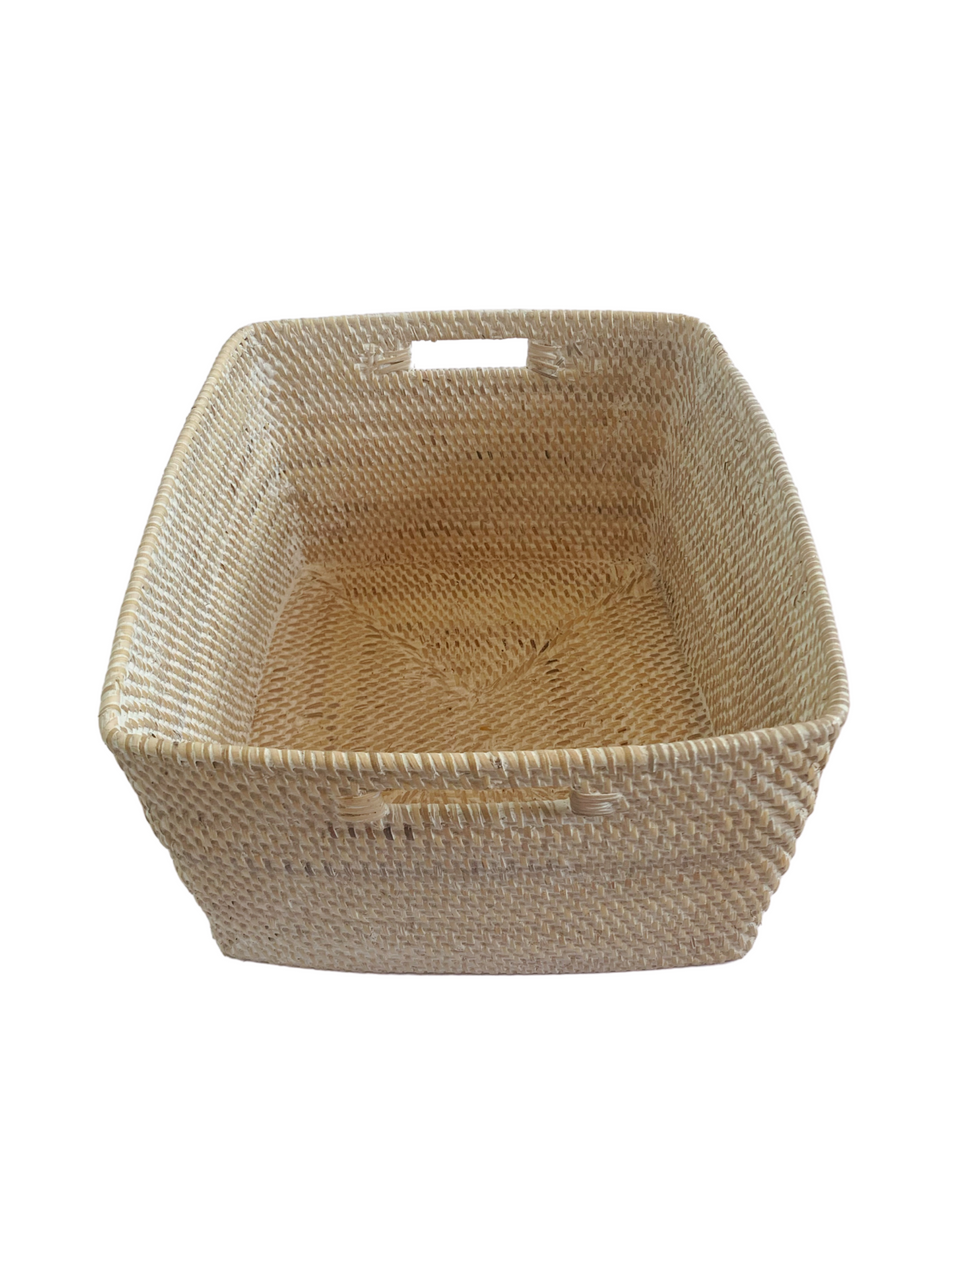 Storage Basket - Large - White Wash Rattan